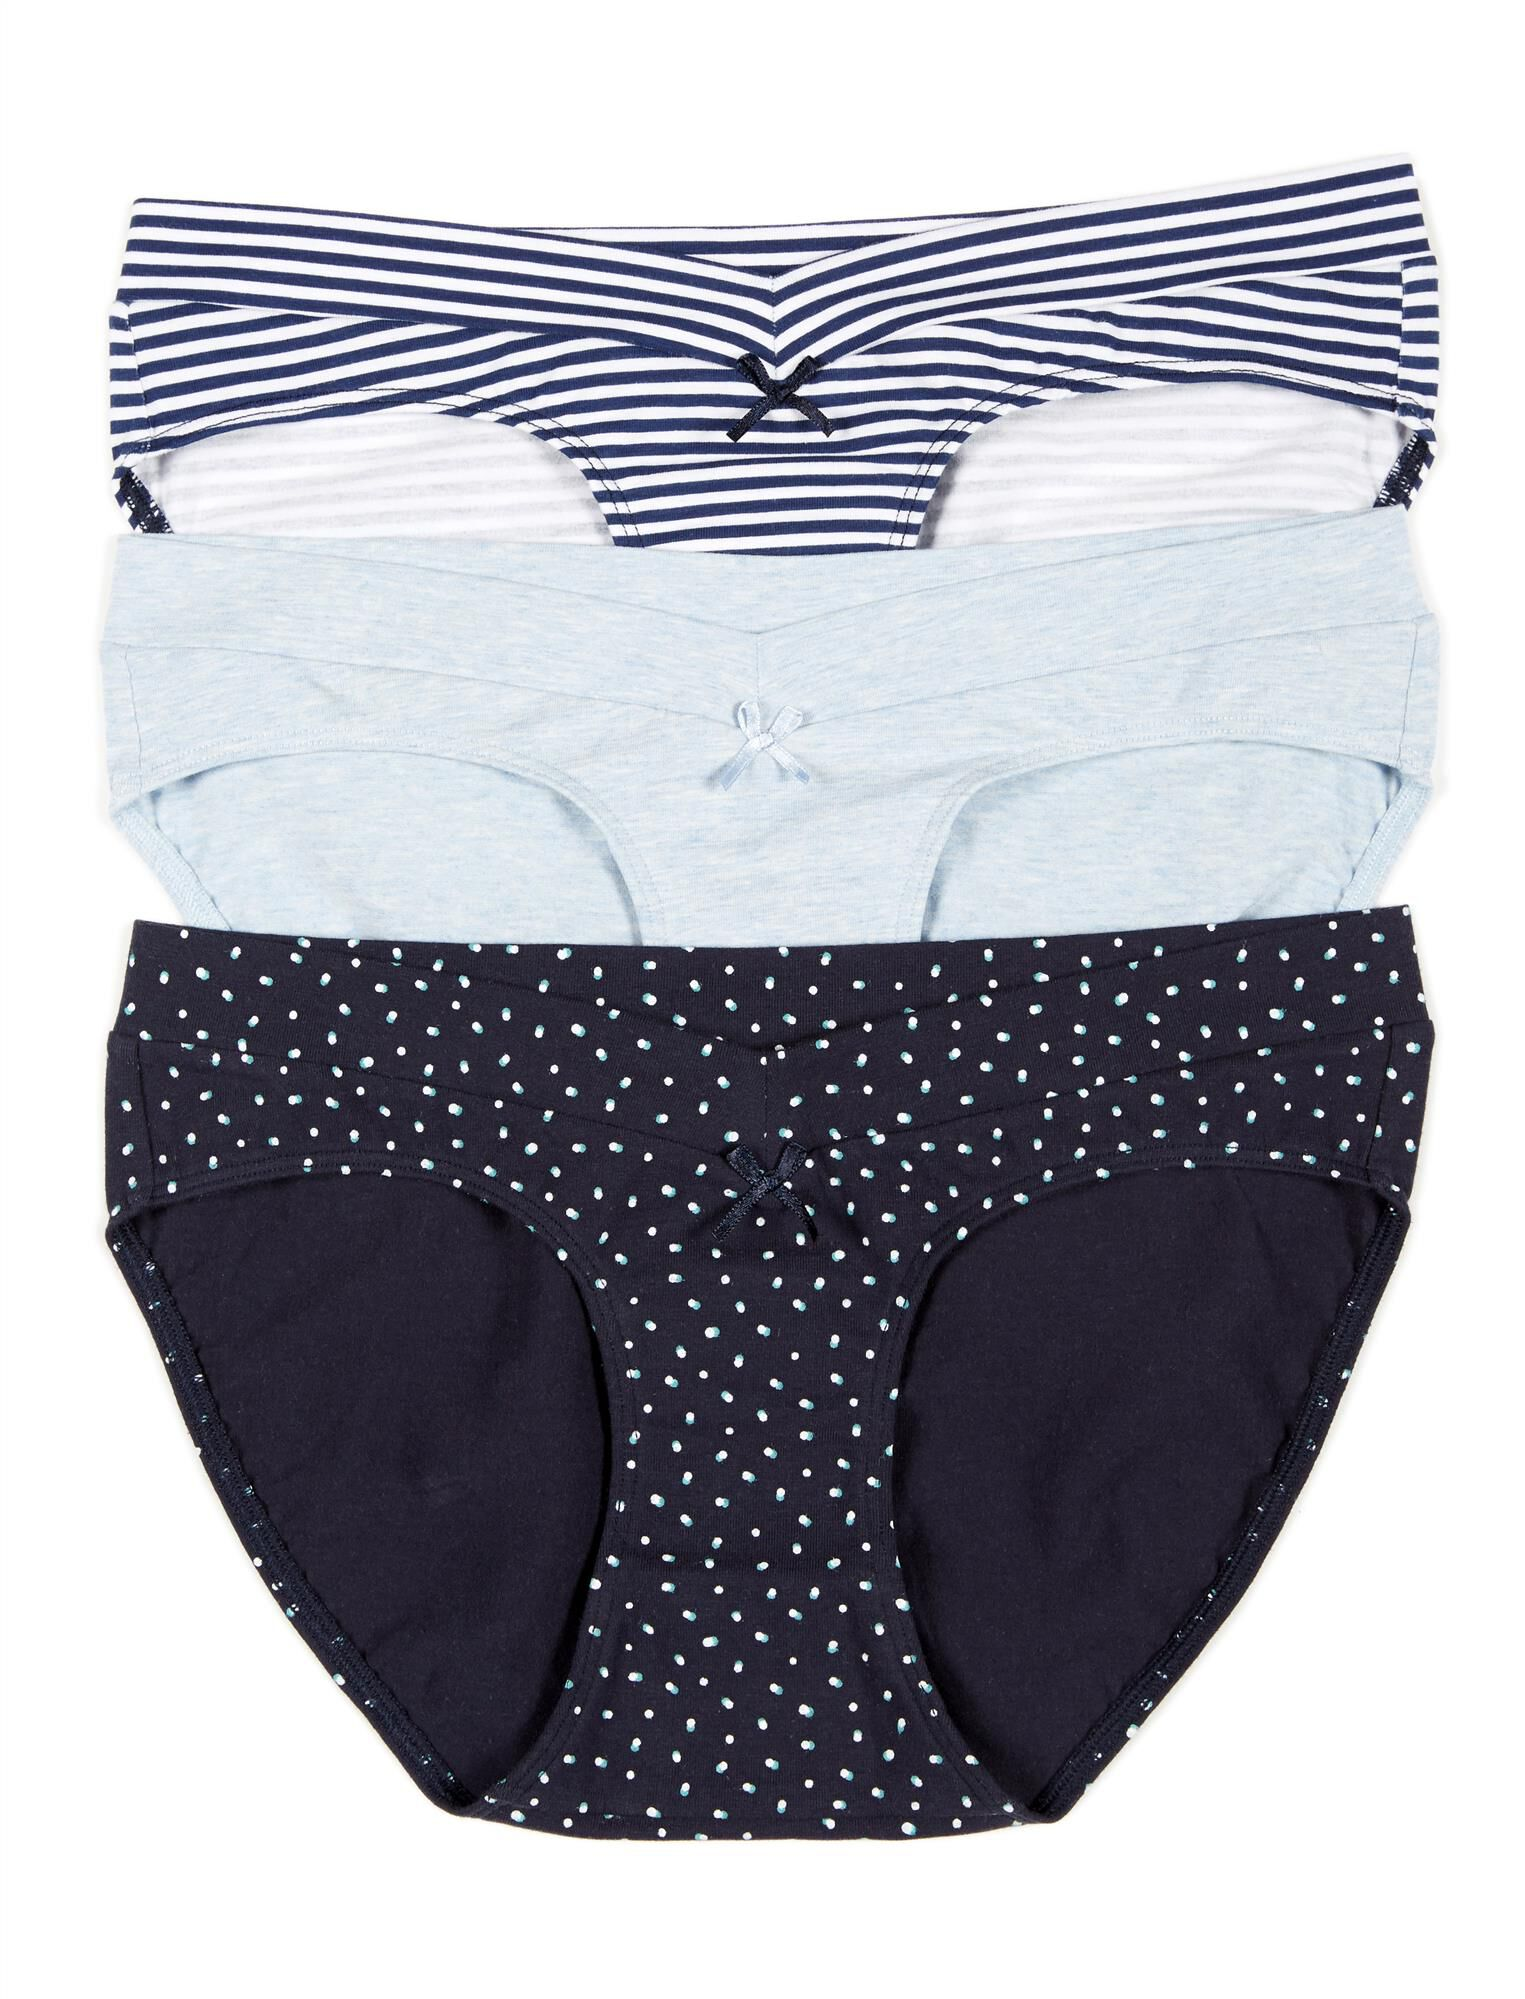 Maternity Hipster Panties (3 Pack)- Stripe/Dot